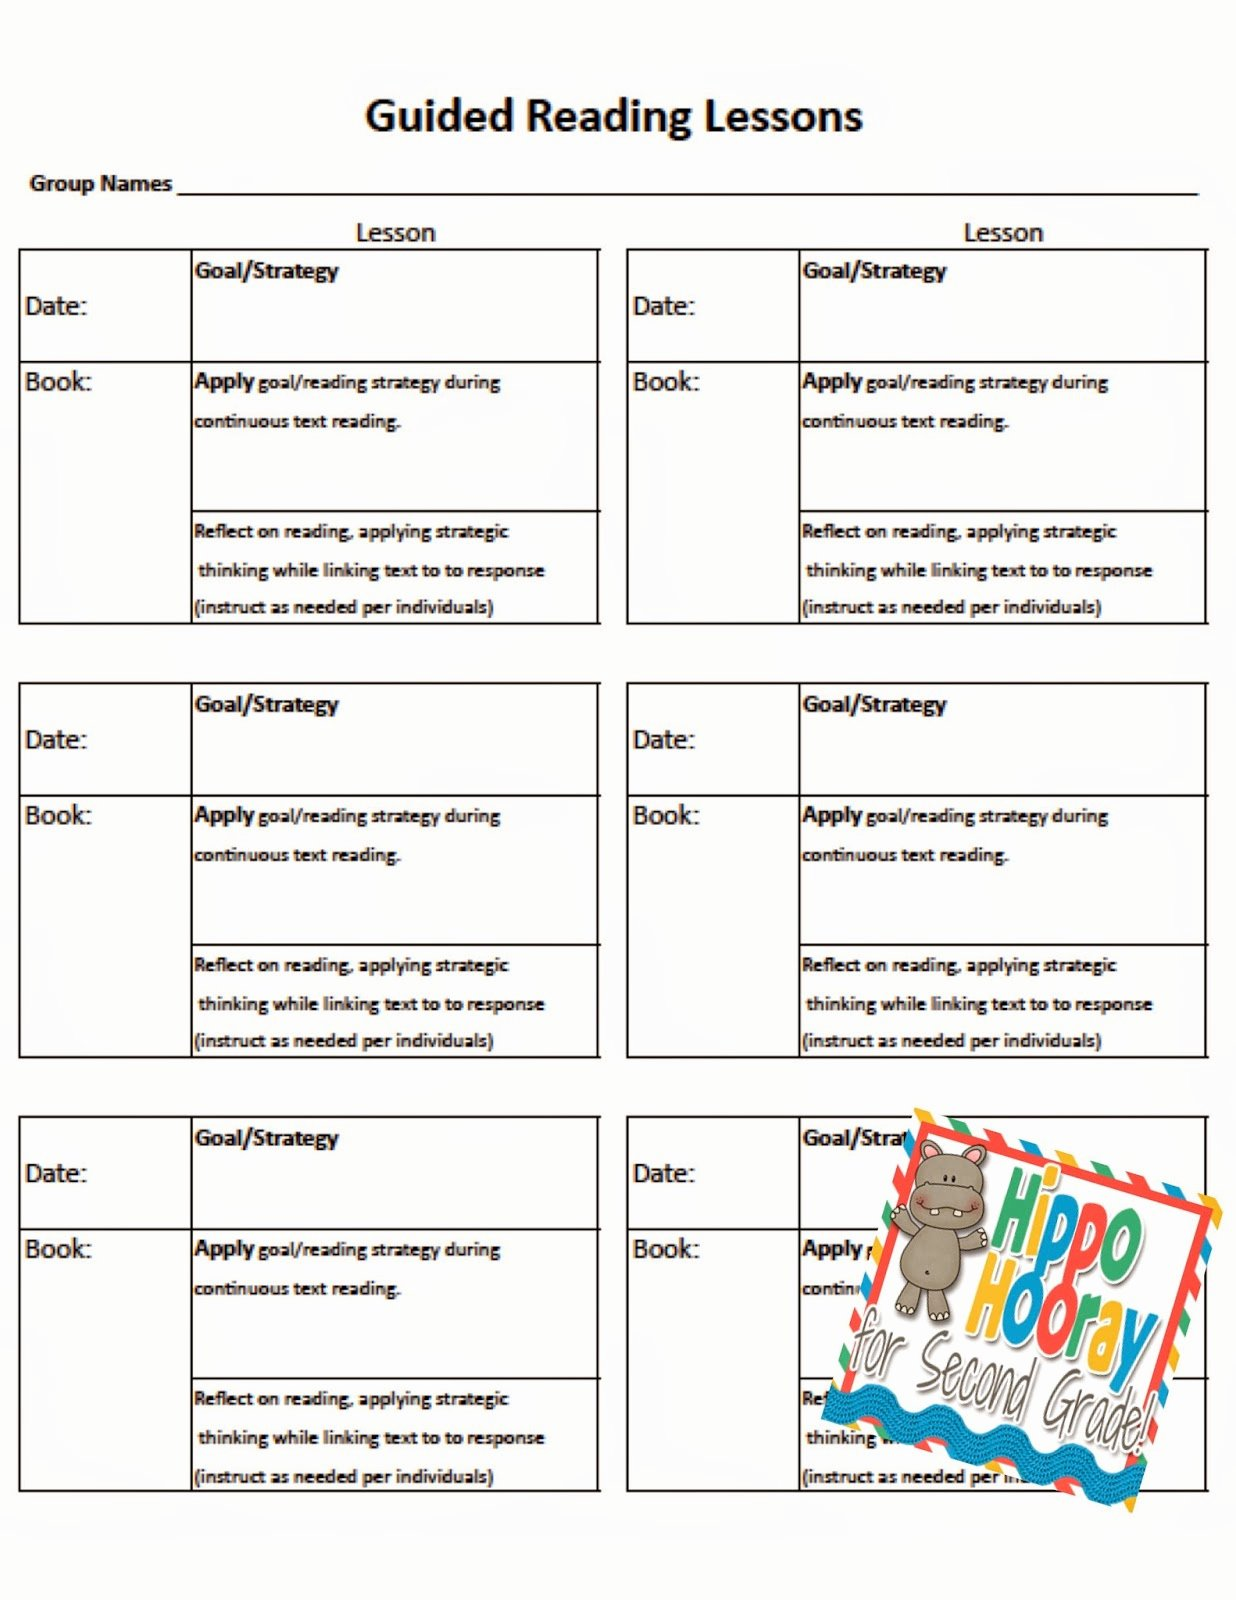 Guided Reading Lesson Plan Template Awesome Guided Reading Lesson Planning and Note Taking Hippo